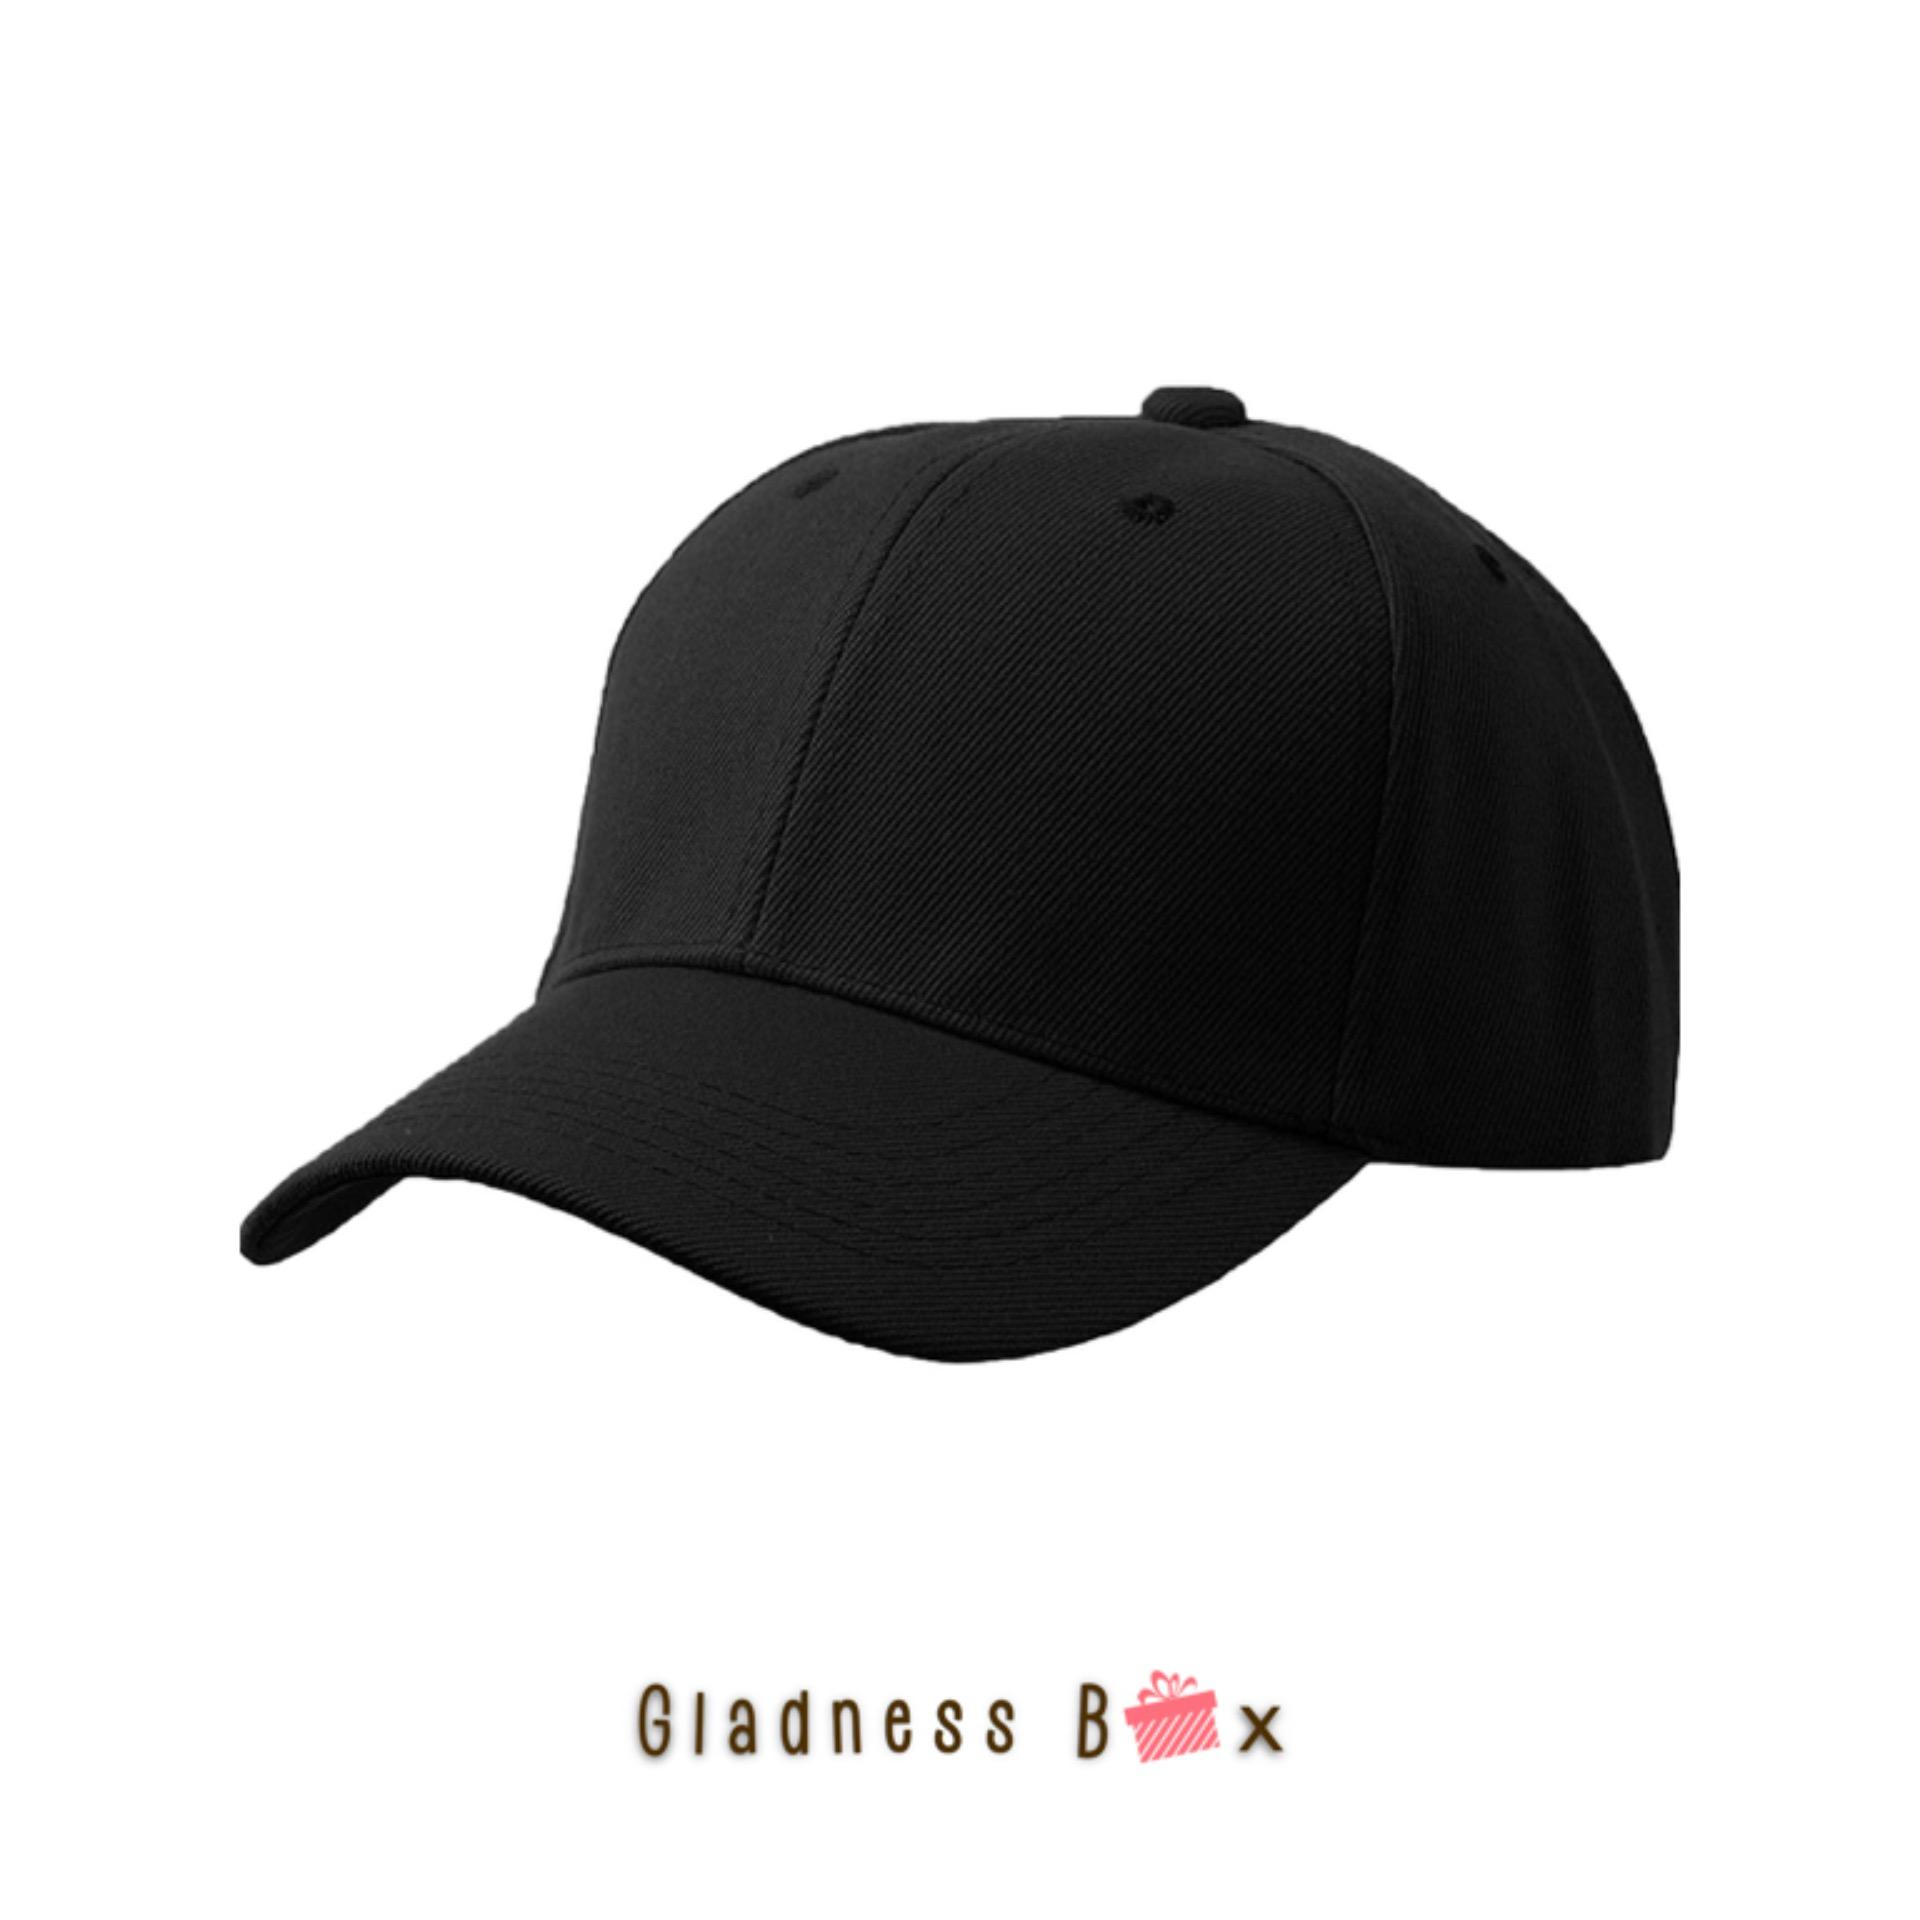 494fbc961585a Gladness Box High Quality Plain Baseball Cap for Men Women Unisex